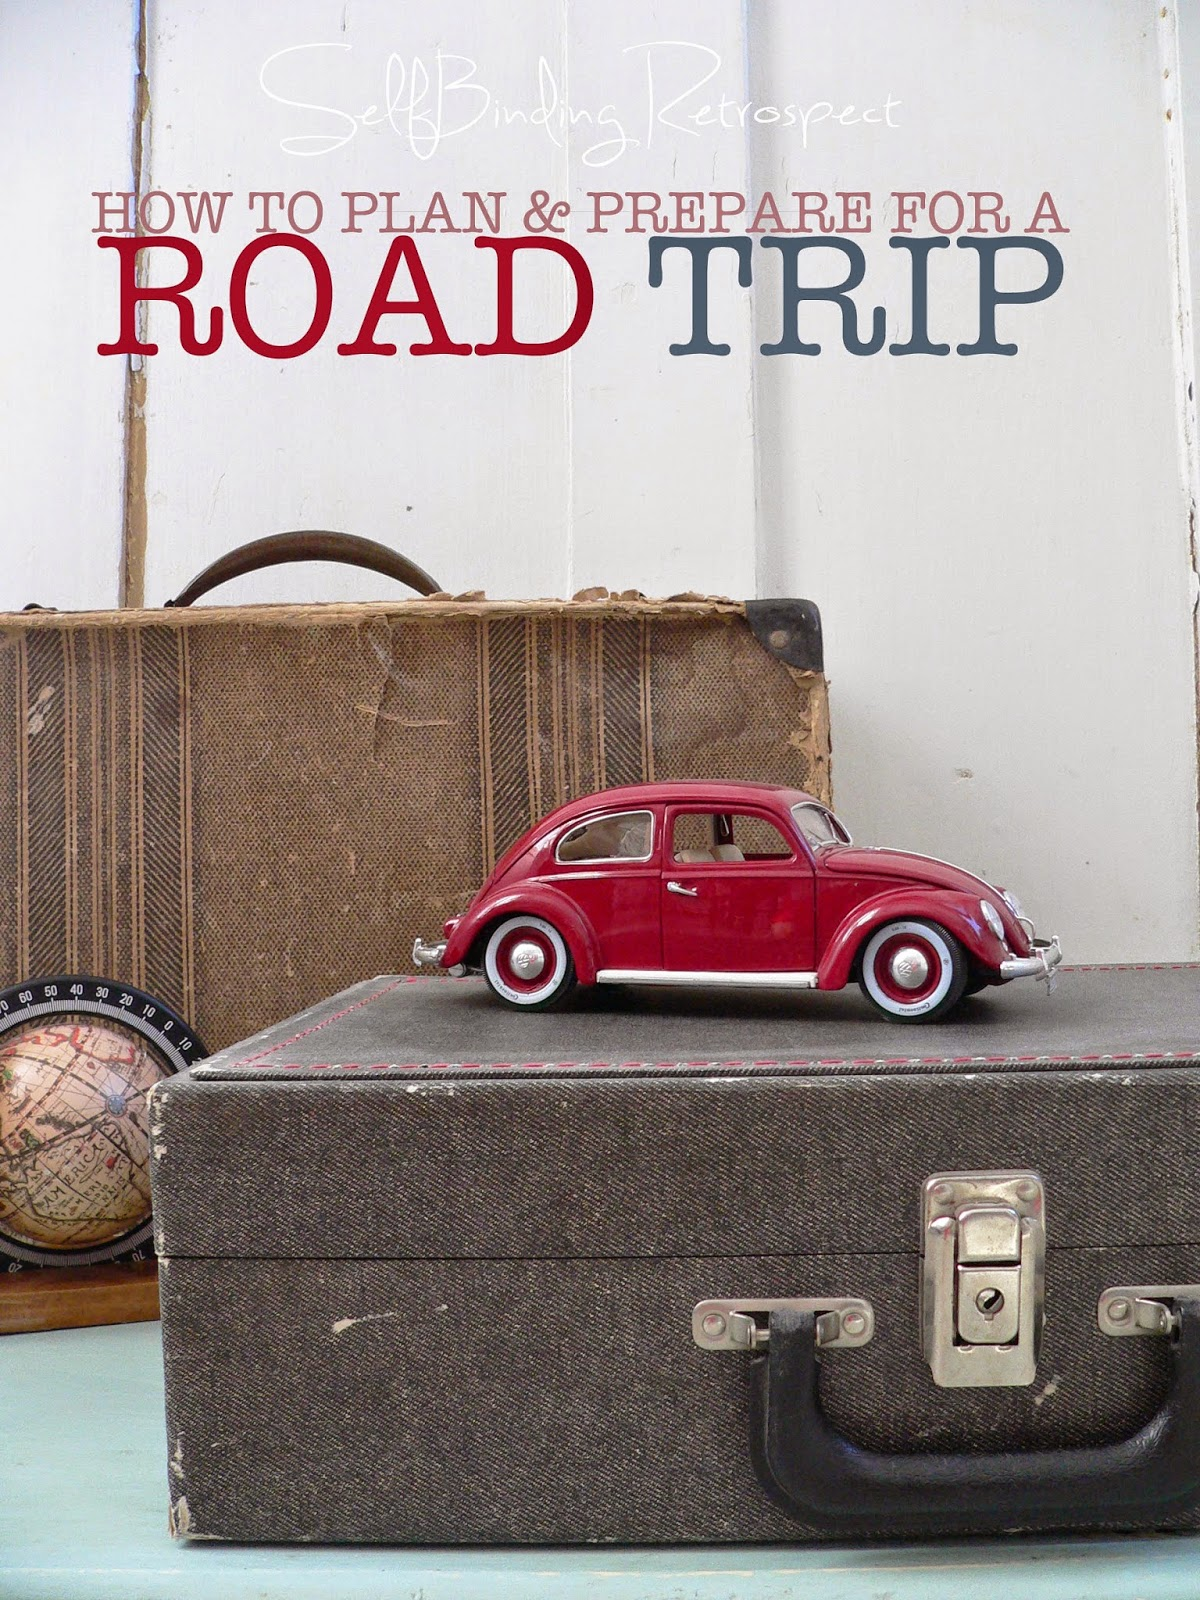 http://selfbindingretrospect.alannarusnak.com/2015/03/how-to-plan-and-prepare-for-road-trip.html